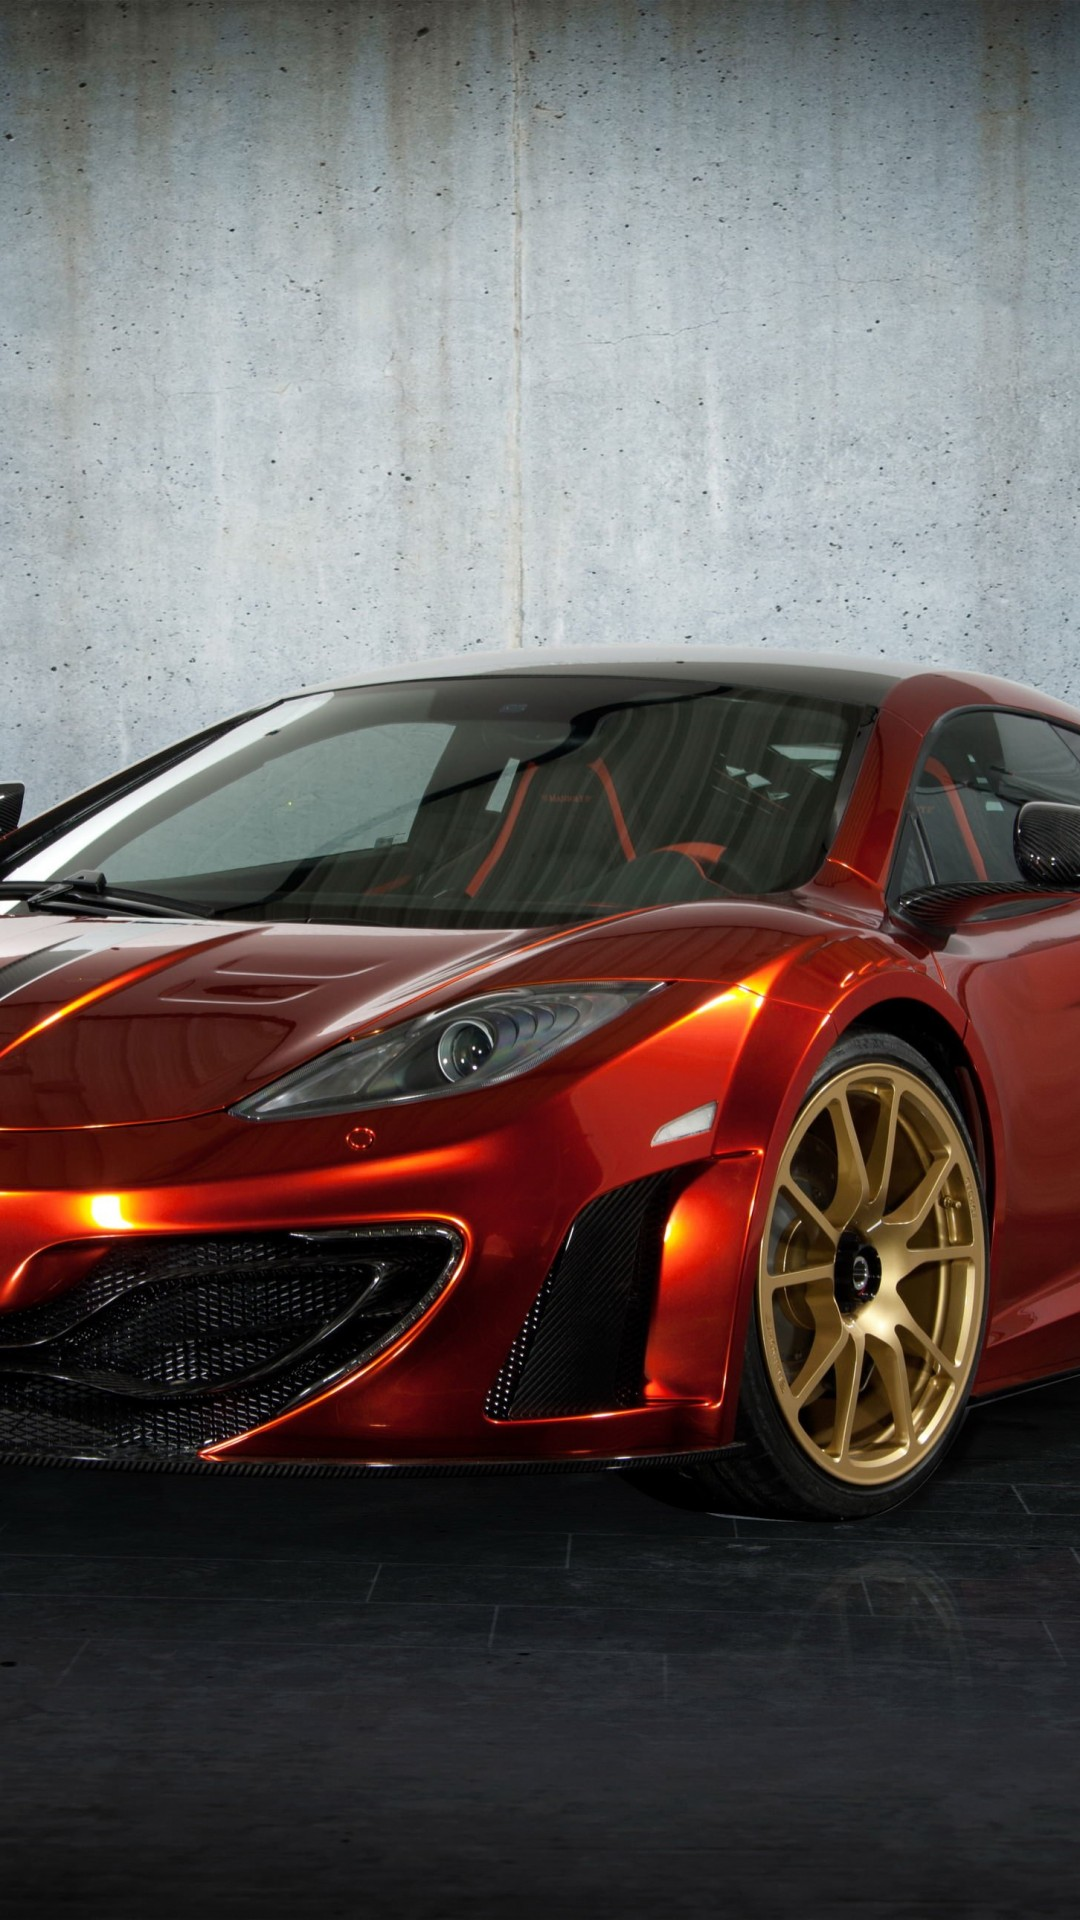 McLaren MP4-12Cf By Mansory Wallpaper for SAMSUNG Galaxy S4